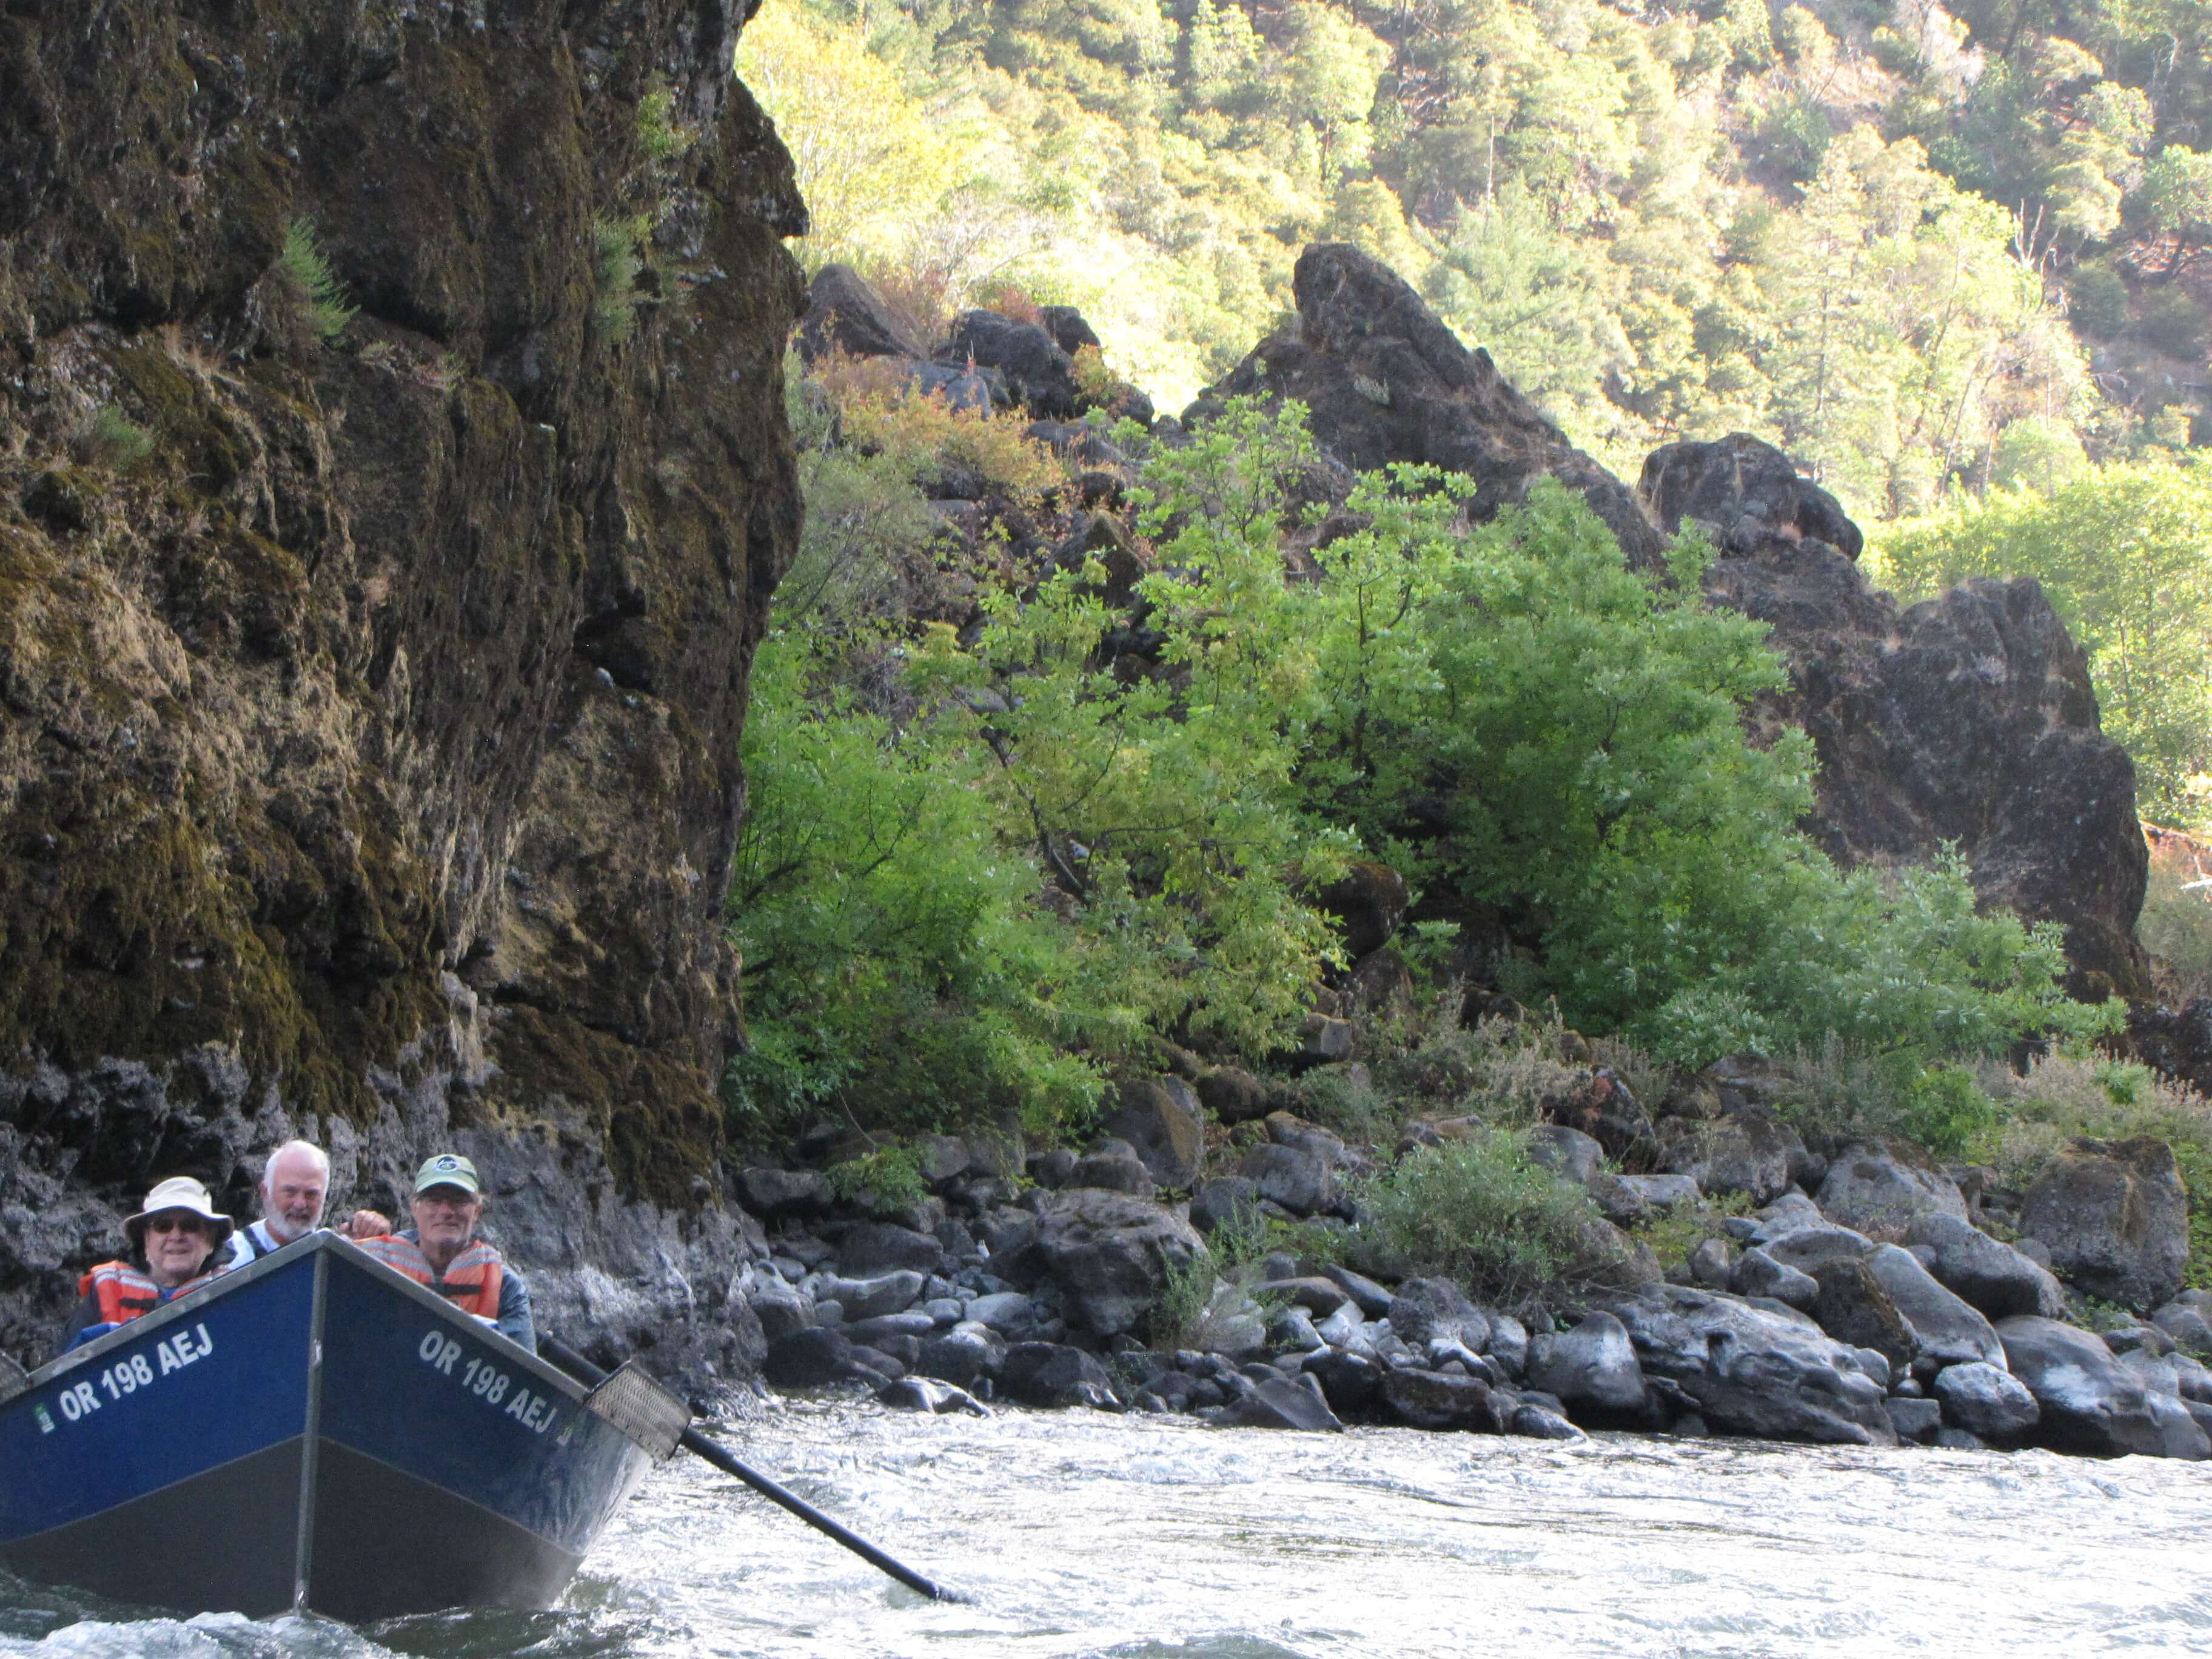 Going Rogue: Rogue River Adventure and Coastal Cultures